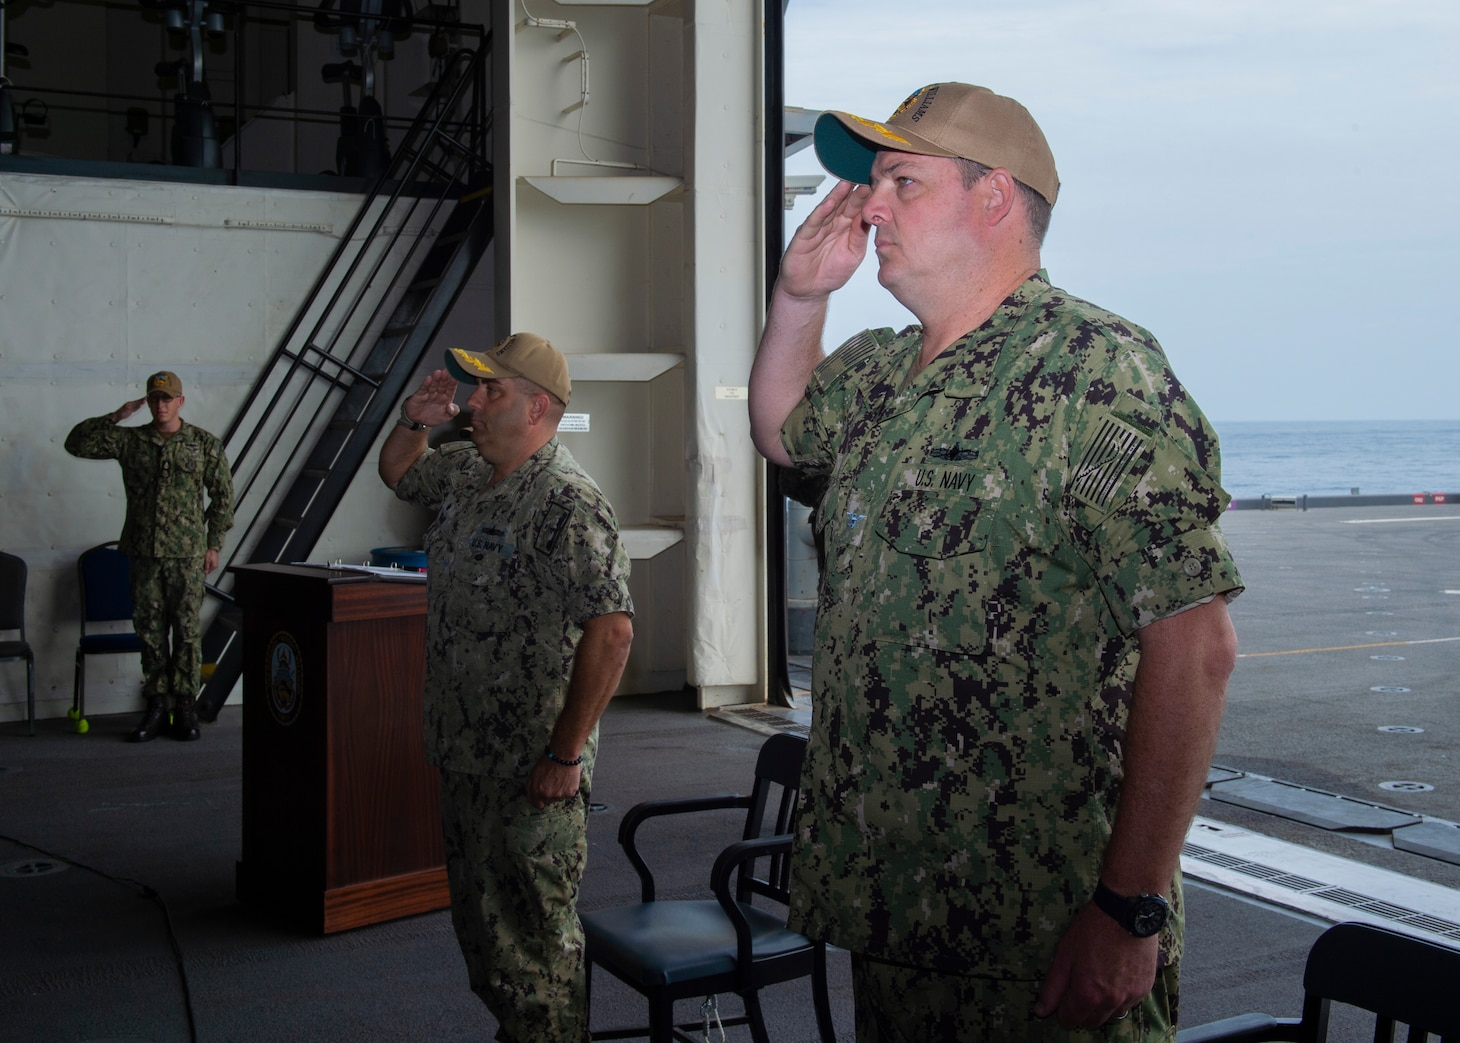 """Capt. Chad Graham, right, and Capt. David Gray, center, and Command Senior Chief Mark Rayner, left, participate in a change of command ceremony aboard the Expeditionary Sea Base USS Hershel """"Woody"""" Williams (ESB 4), July 25, 2021."""